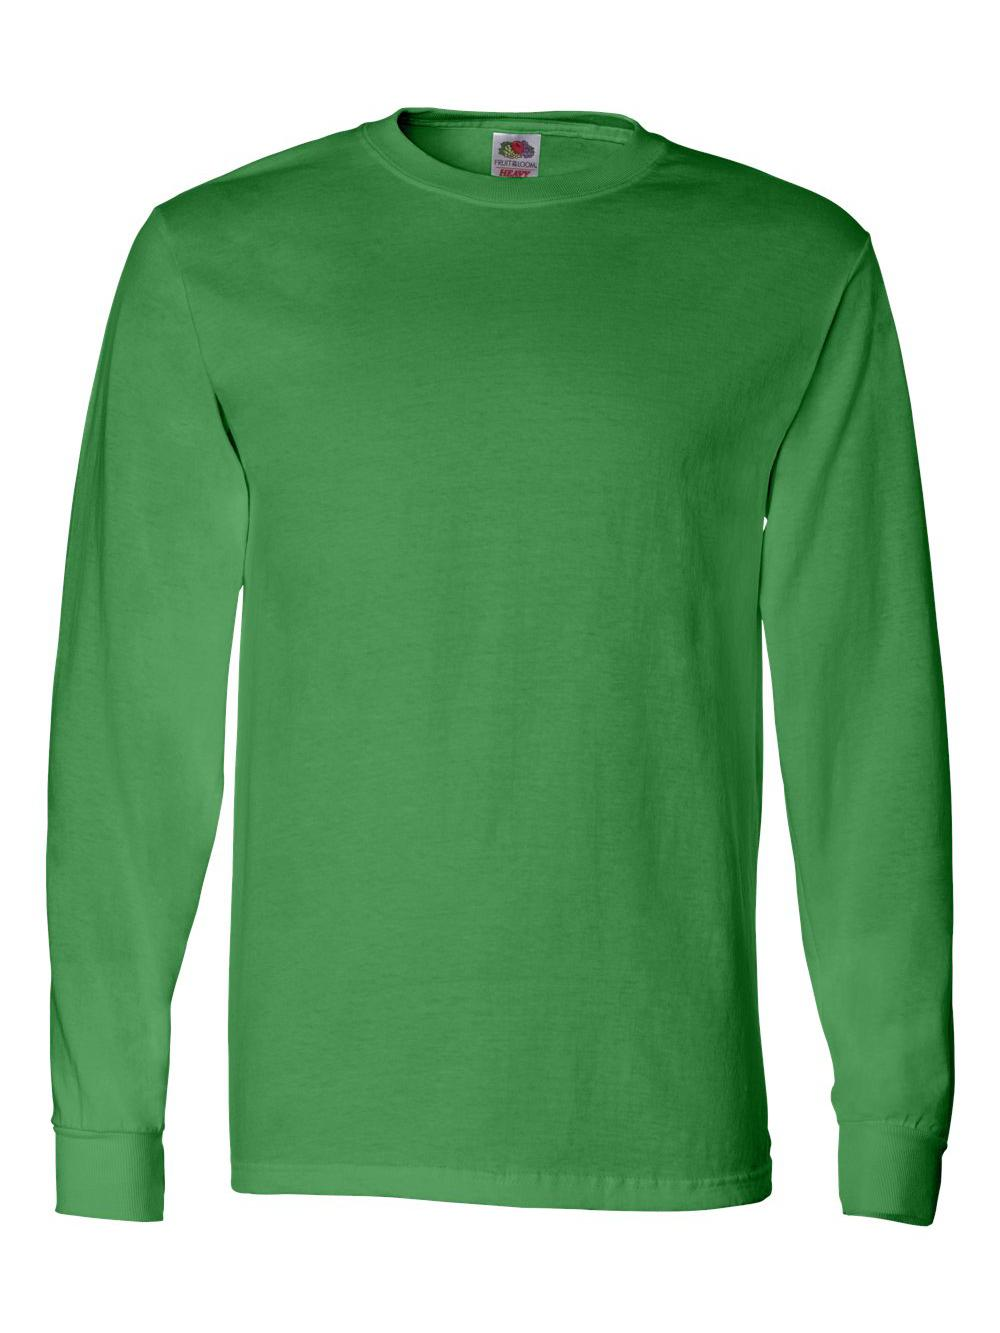 Fruit-of-the-Loom-HD-Cotton-Long-Sleeve-T-Shirt-4930R thumbnail 39